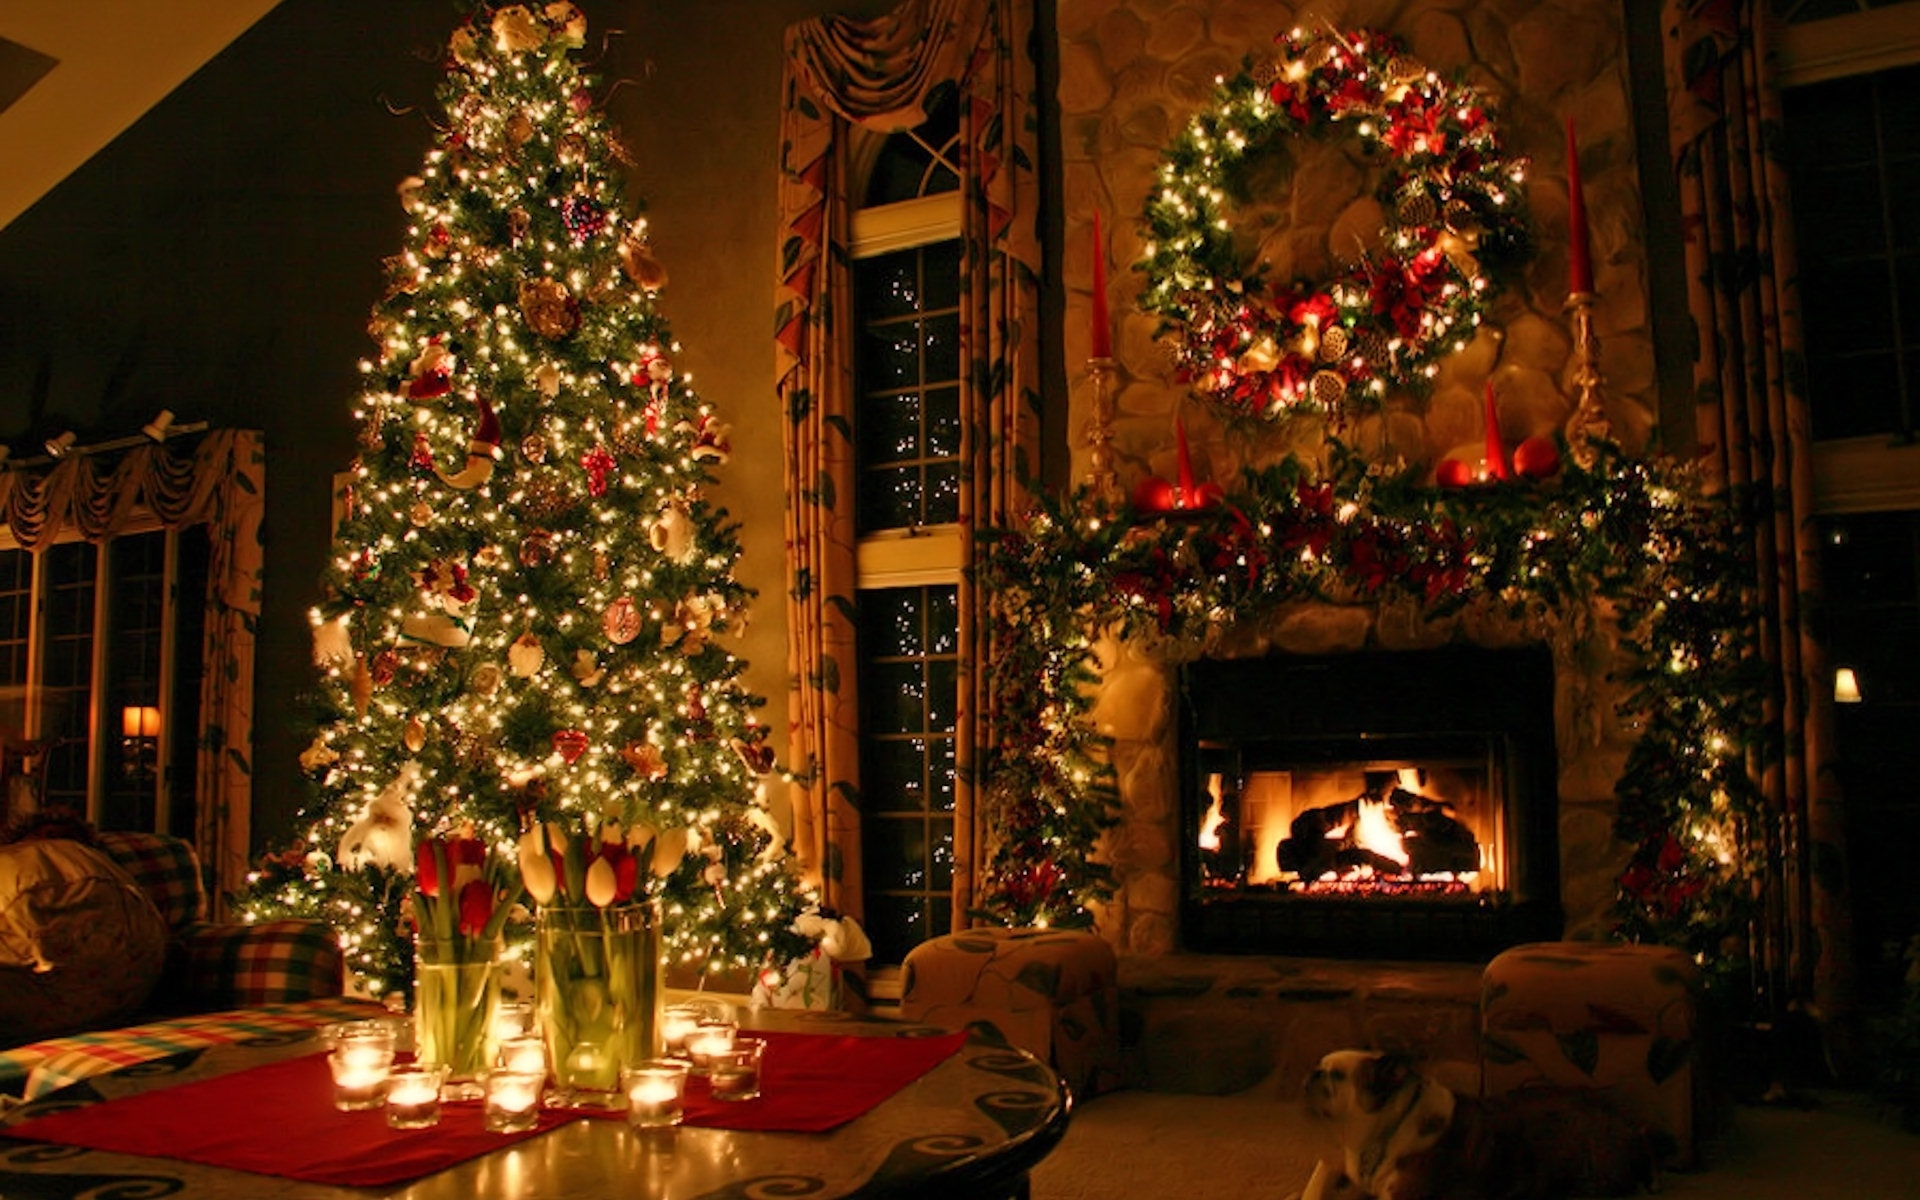 Christmas Background Pictures For Desktop - Wallpapers High Definition